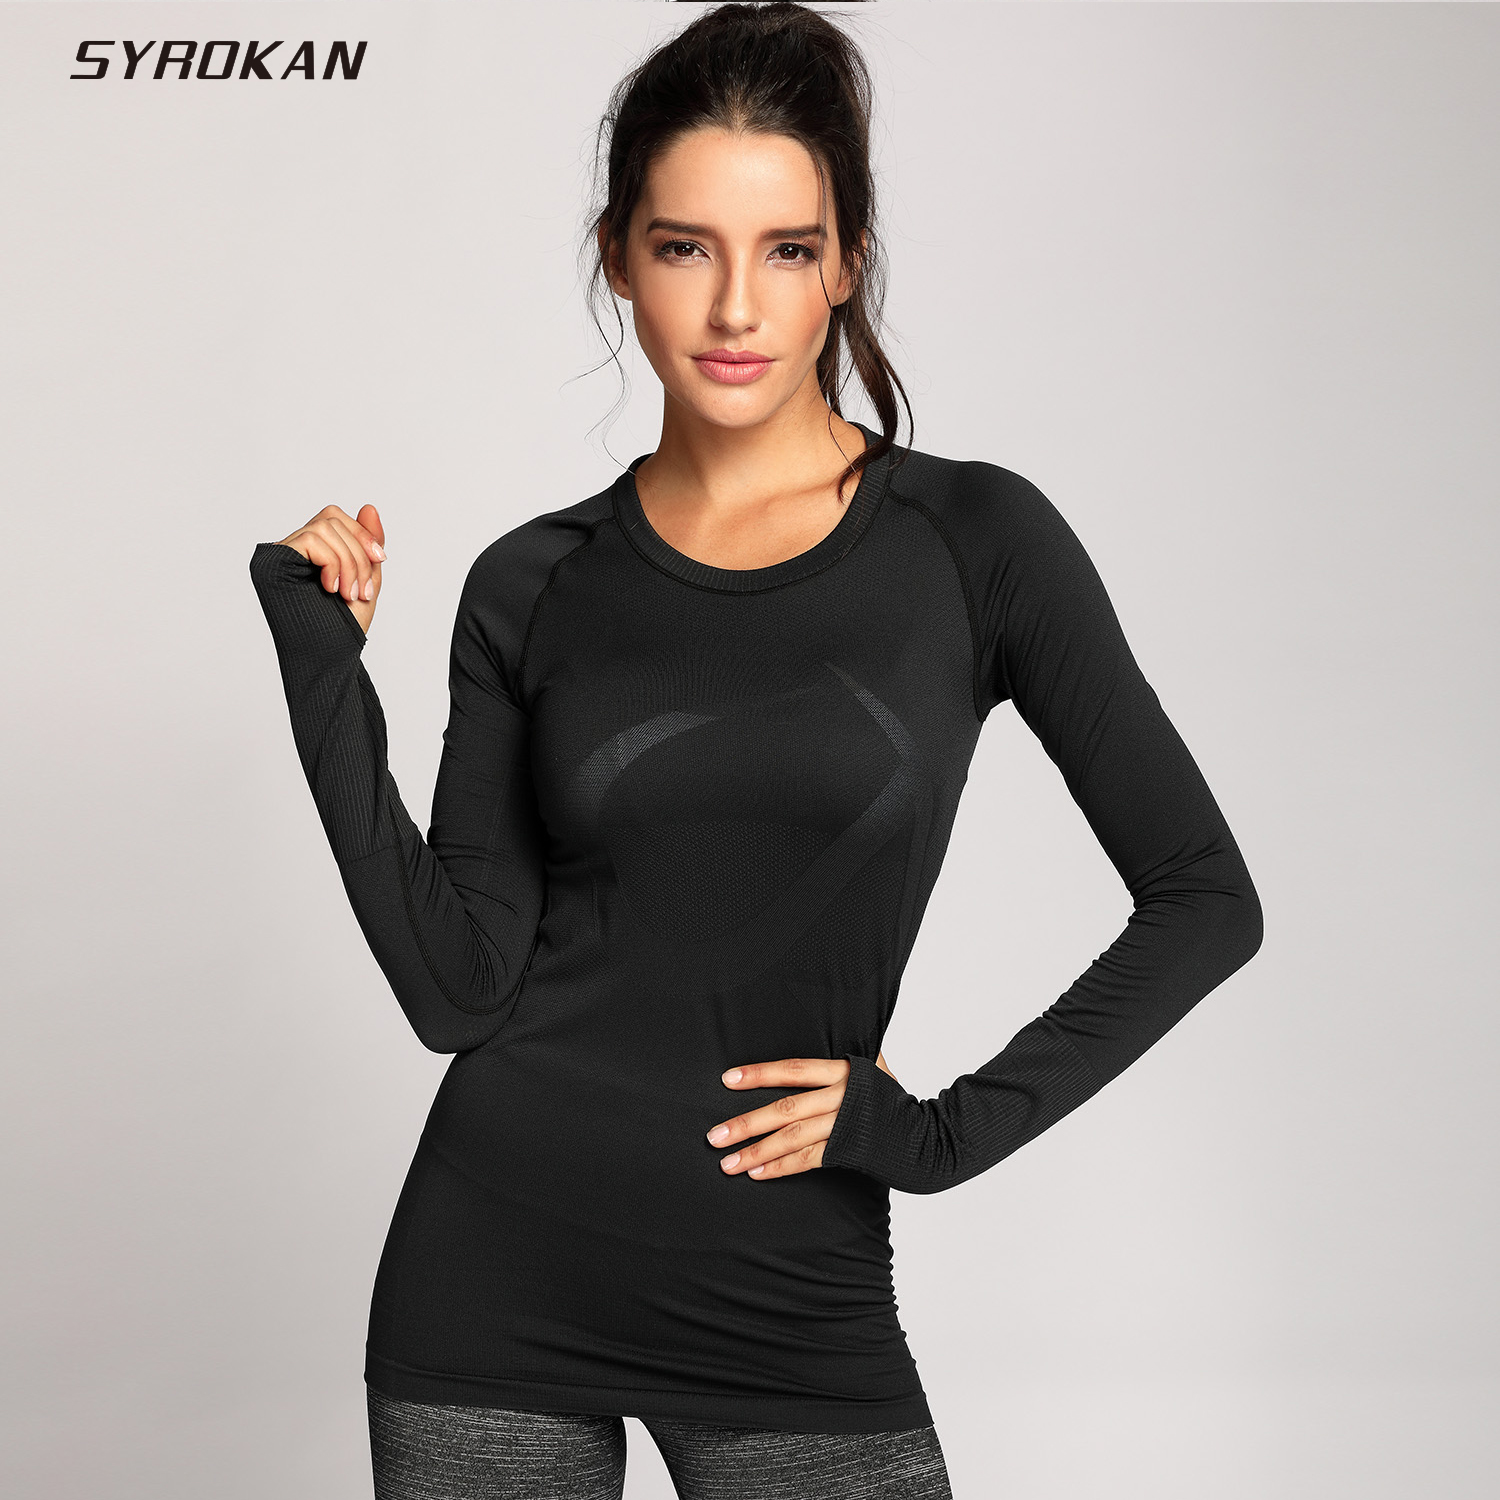 SYROKAN Women's Active Long Sleeve Sports Running Tee Top Seamless Leisure T-shirt